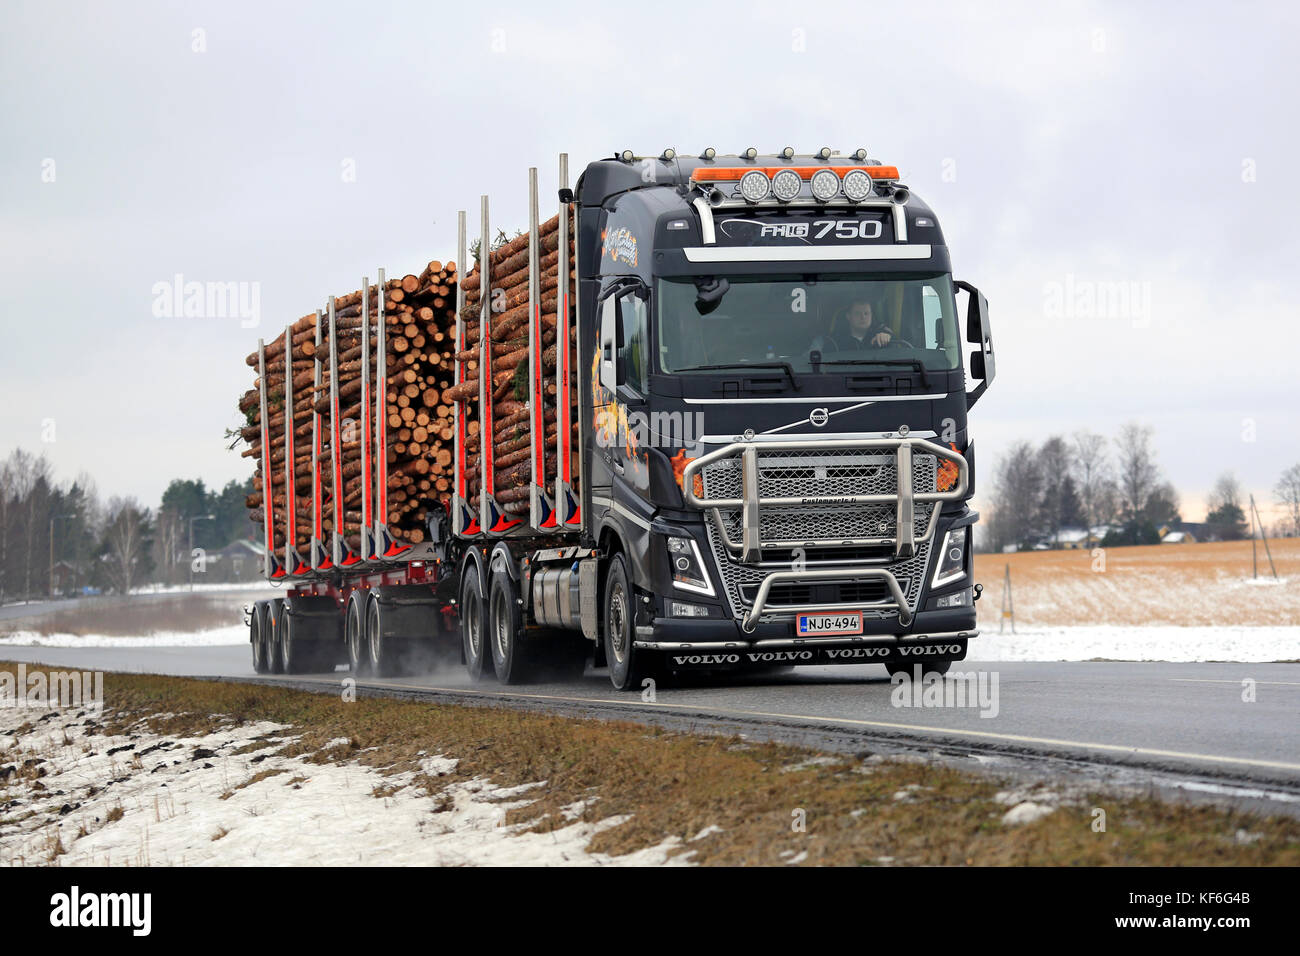 SALO, FINLAND -  FEBRUARY 19, 2016: Volvo FH16 750 logging truck hauls pulp wood along highway in South of Finland. Stock Photo